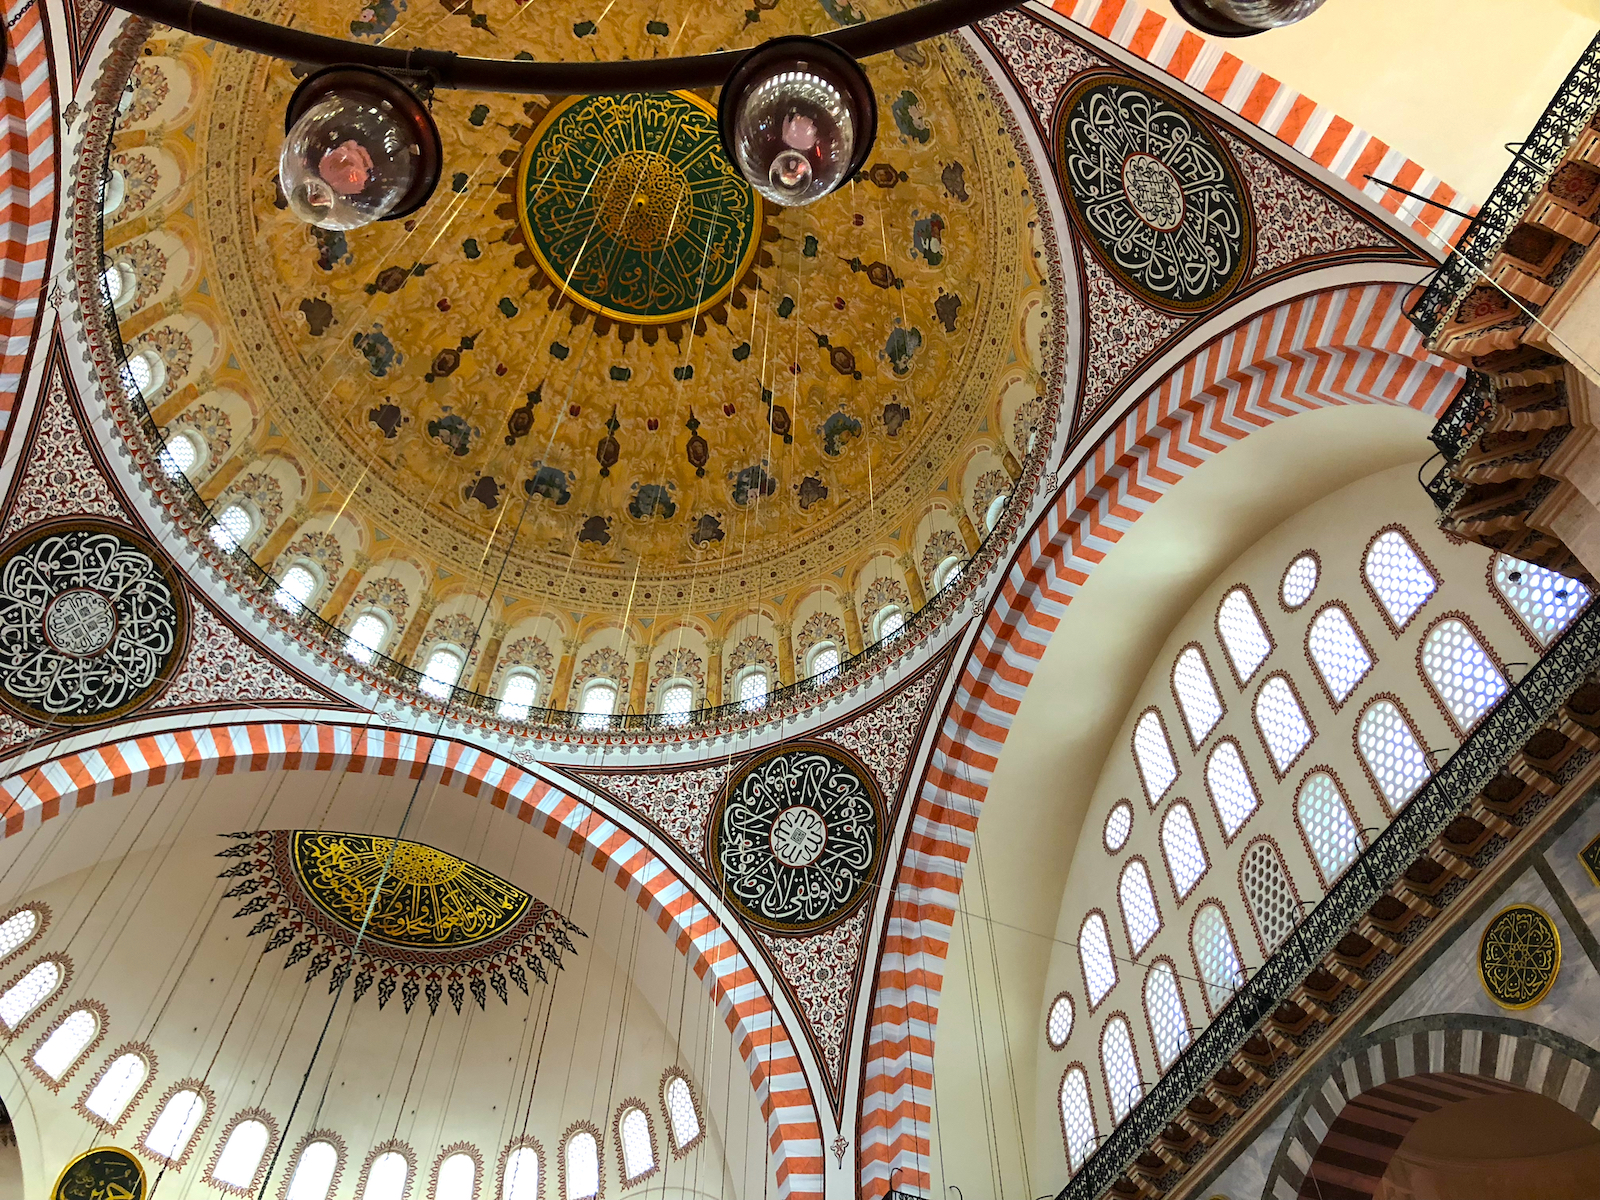 Süleymaniye Mosque - Top 11 Things to Do In Istanbul